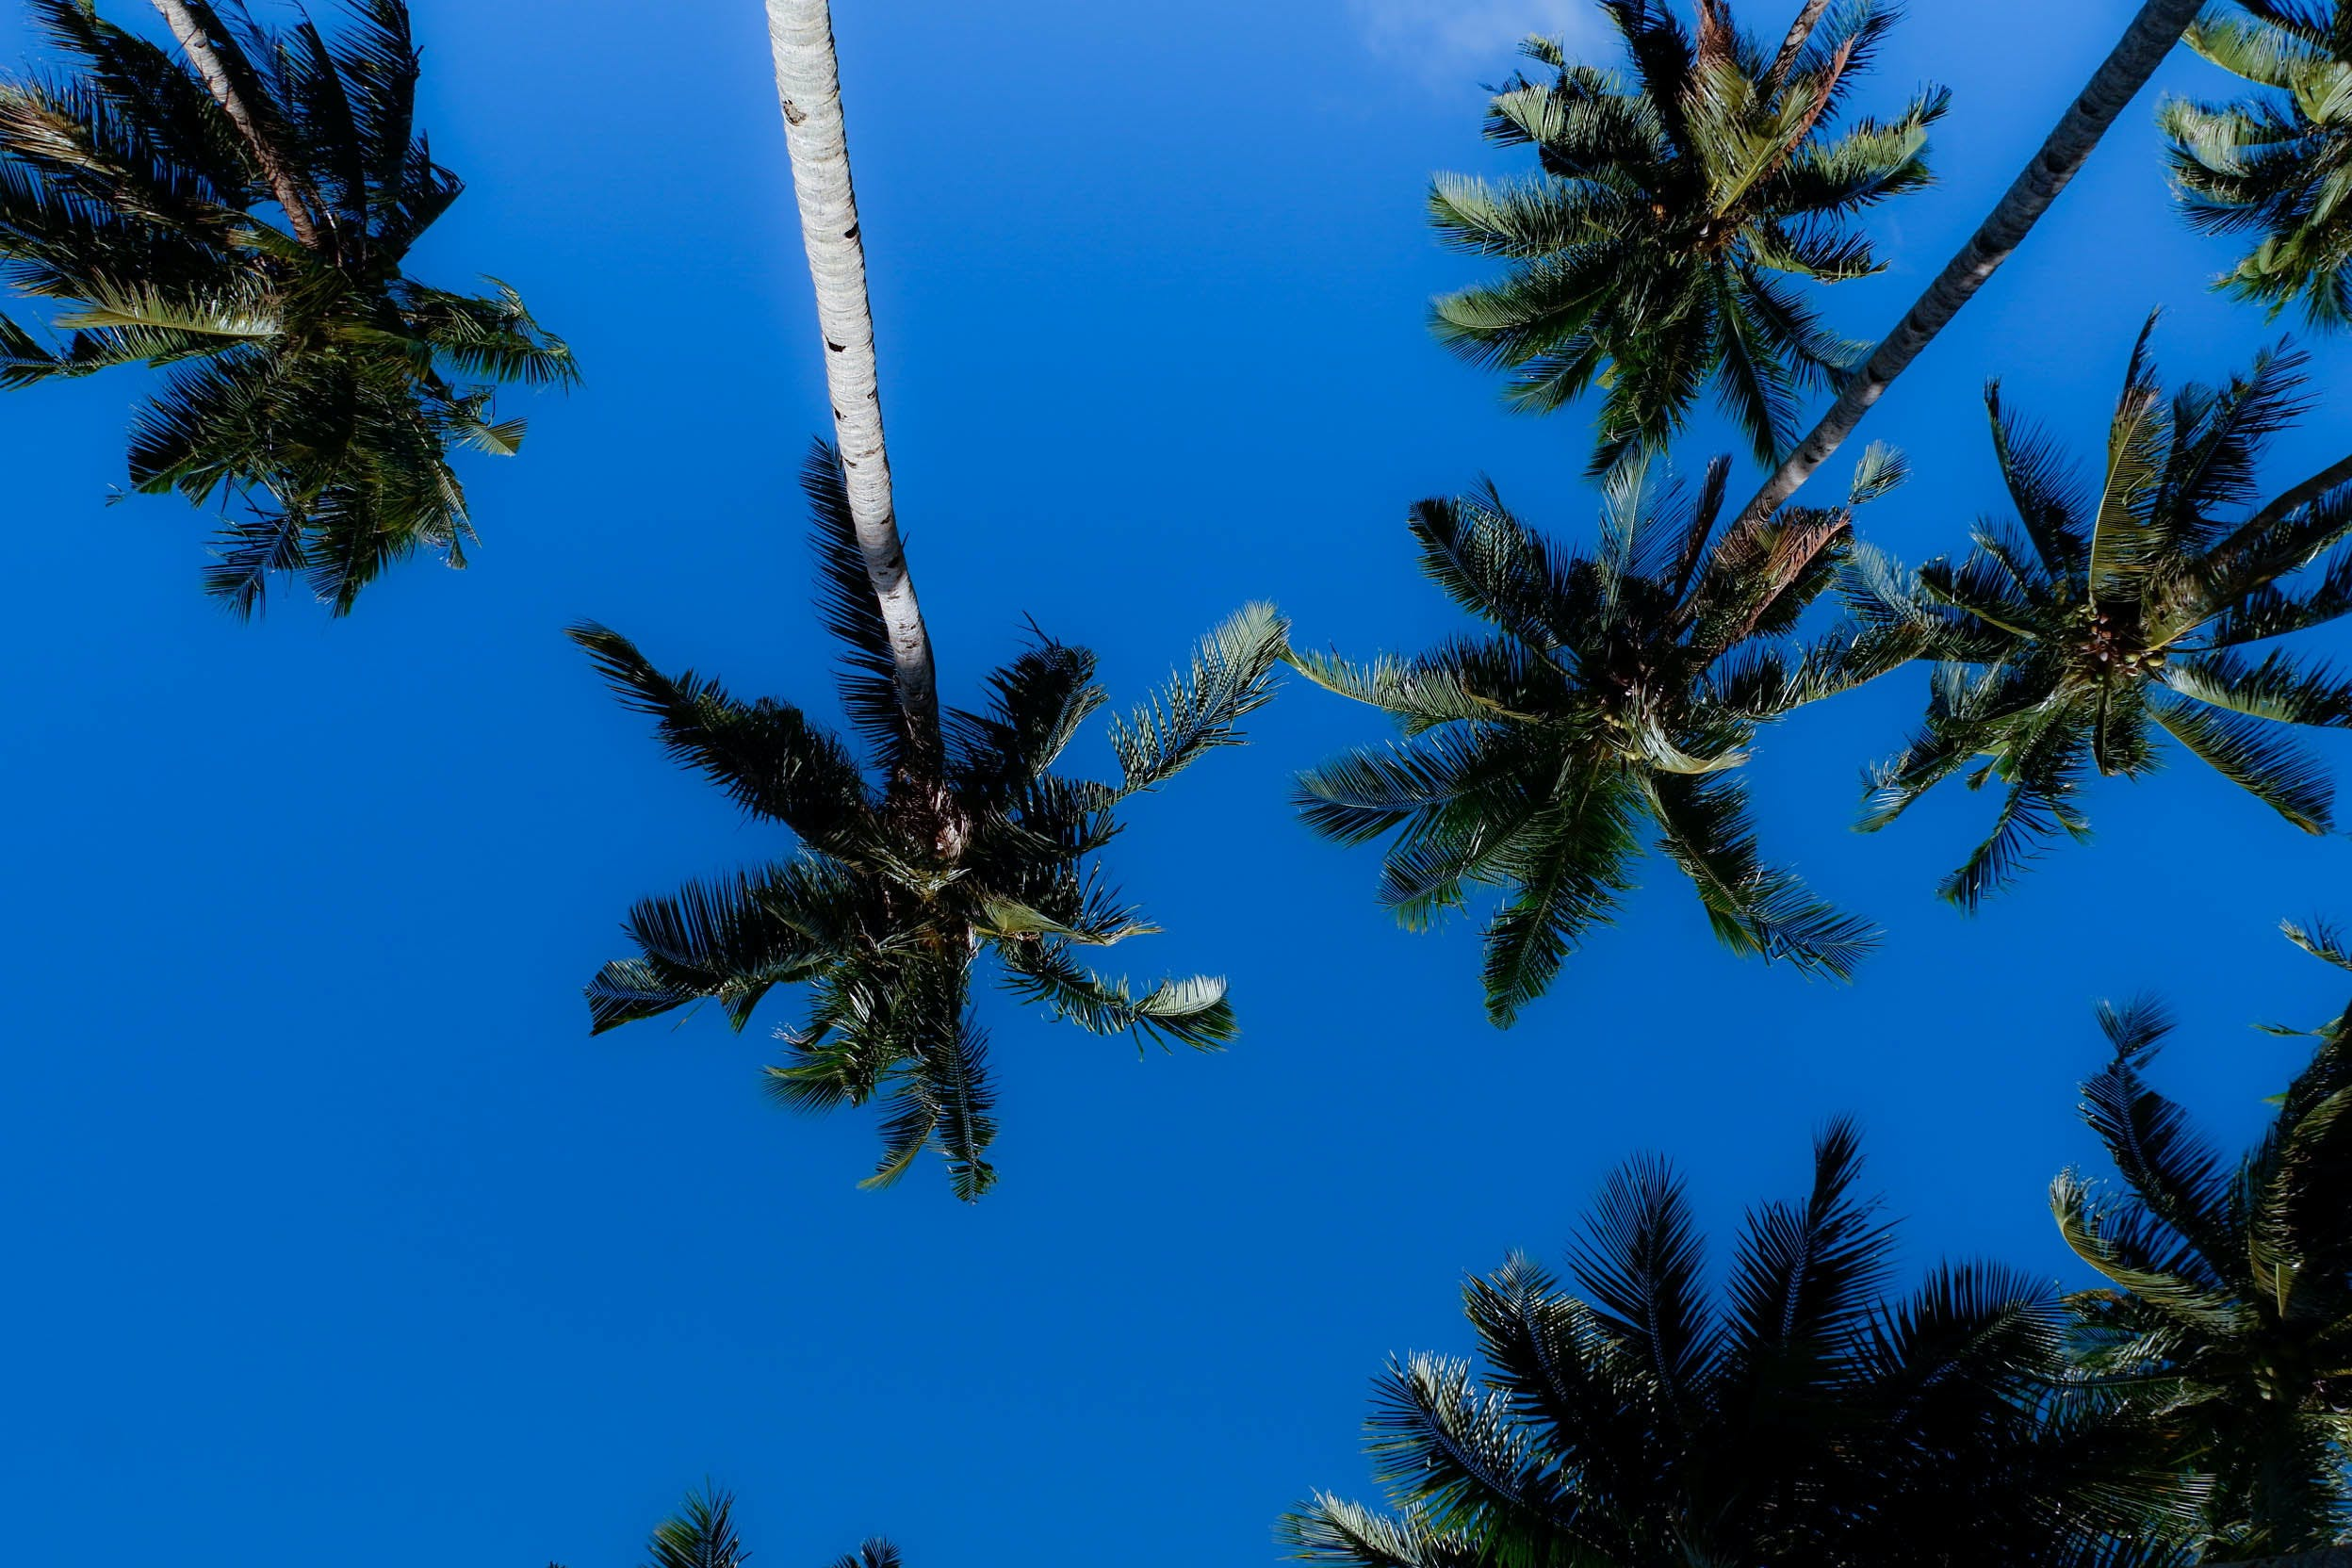 blue sky, coconut trees, dark green plants